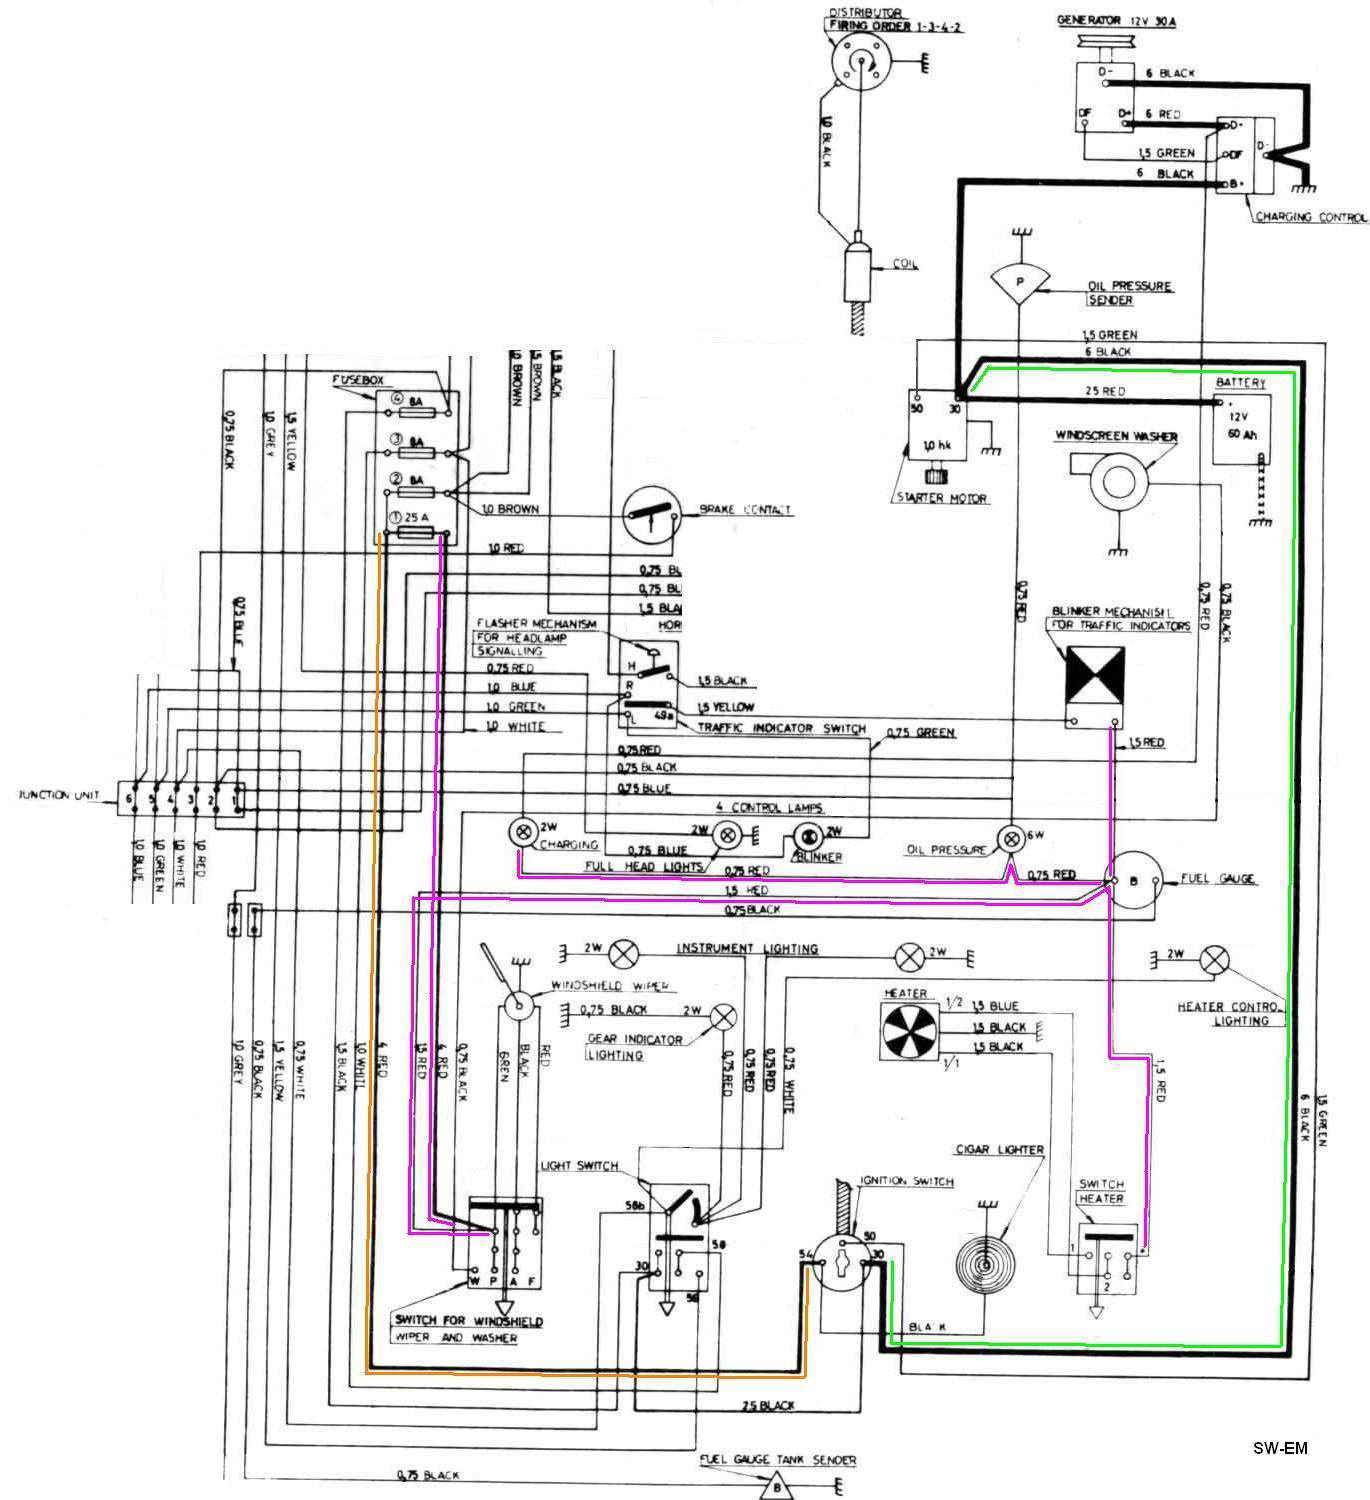 2006 Volvo Xc70 Fuse Box Wiring Library F250 Diagram Alternator 122s Opinions About U2022 Rh Voterid Co 240